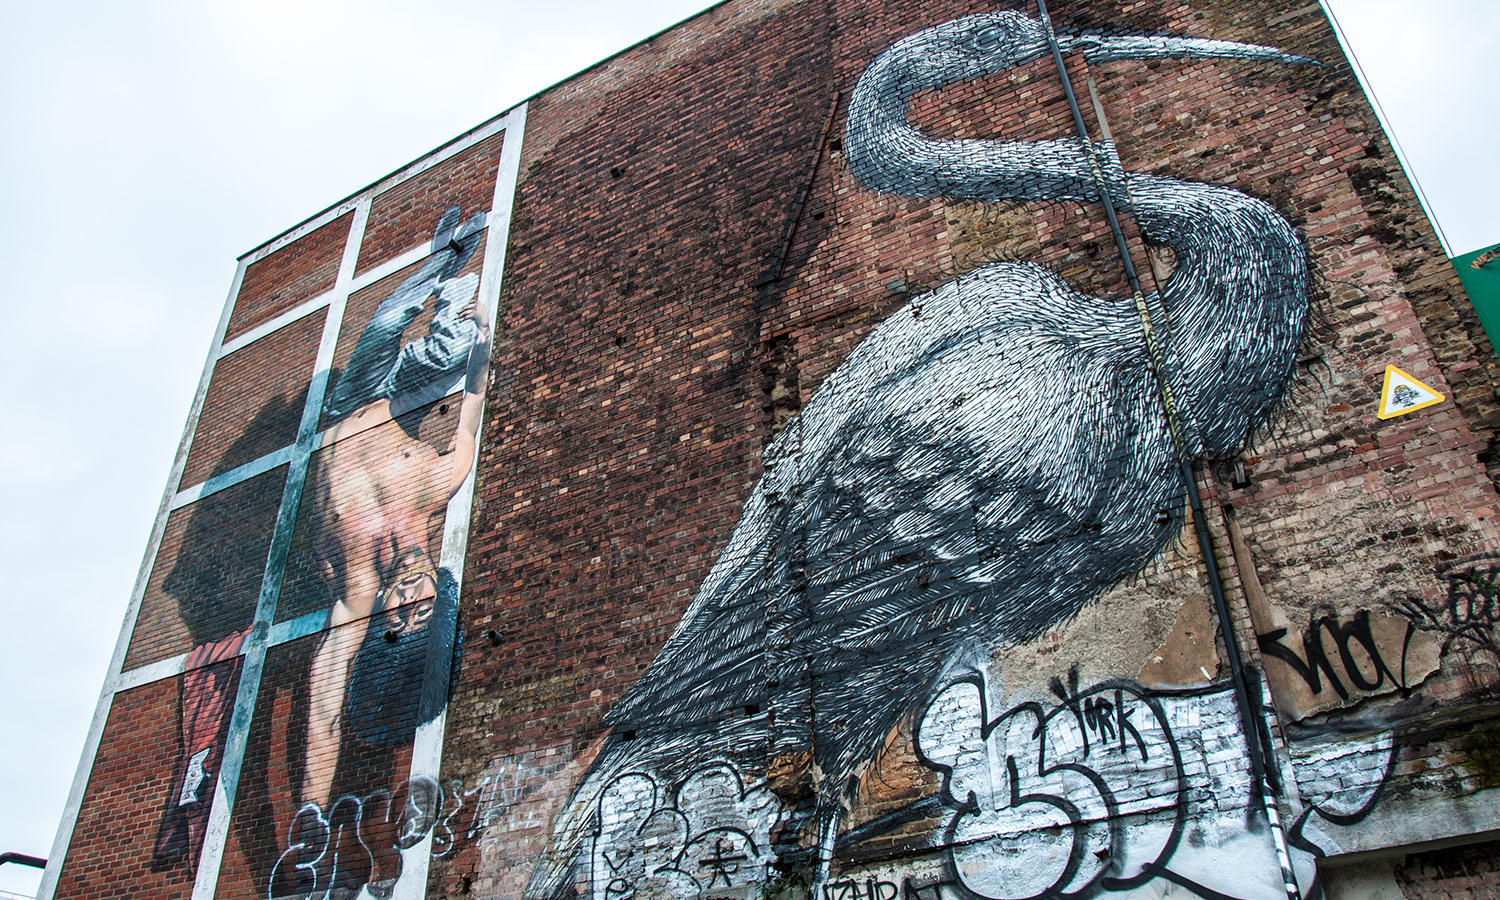 Crane by Roa on Hanbury Street - London Street Art